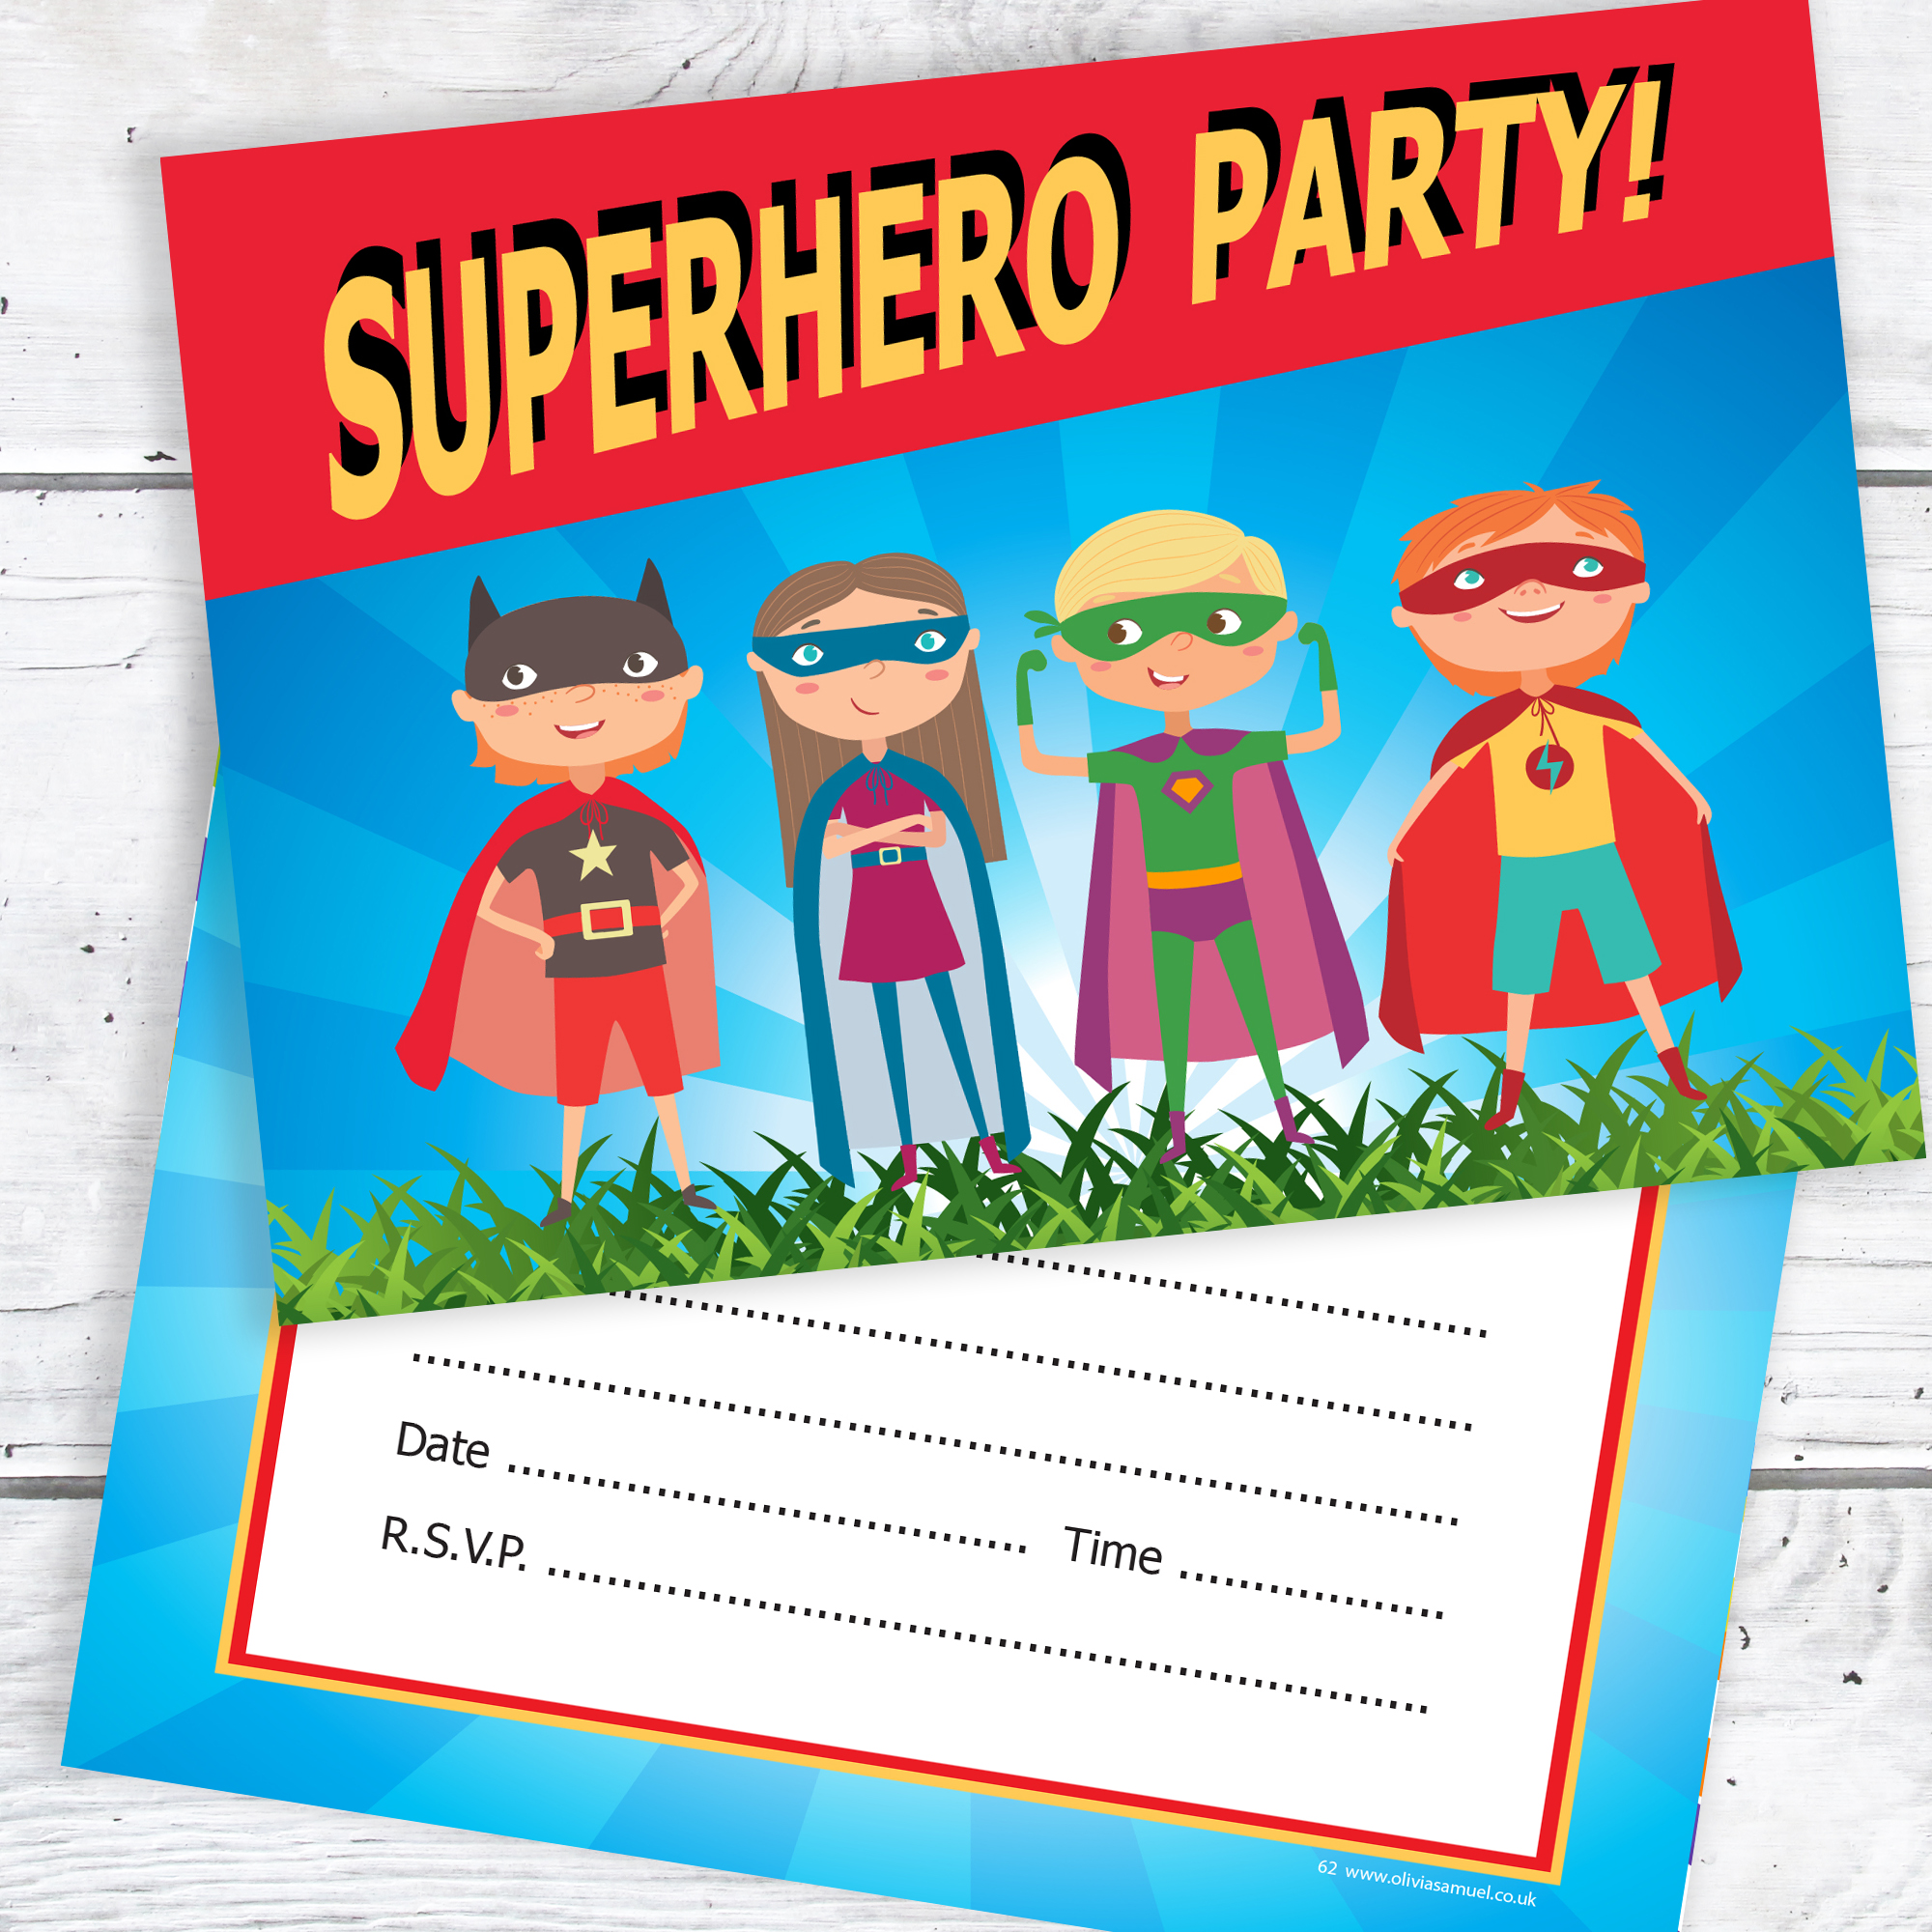 Super Hero Party Kids Birthday Invitations RTW0062